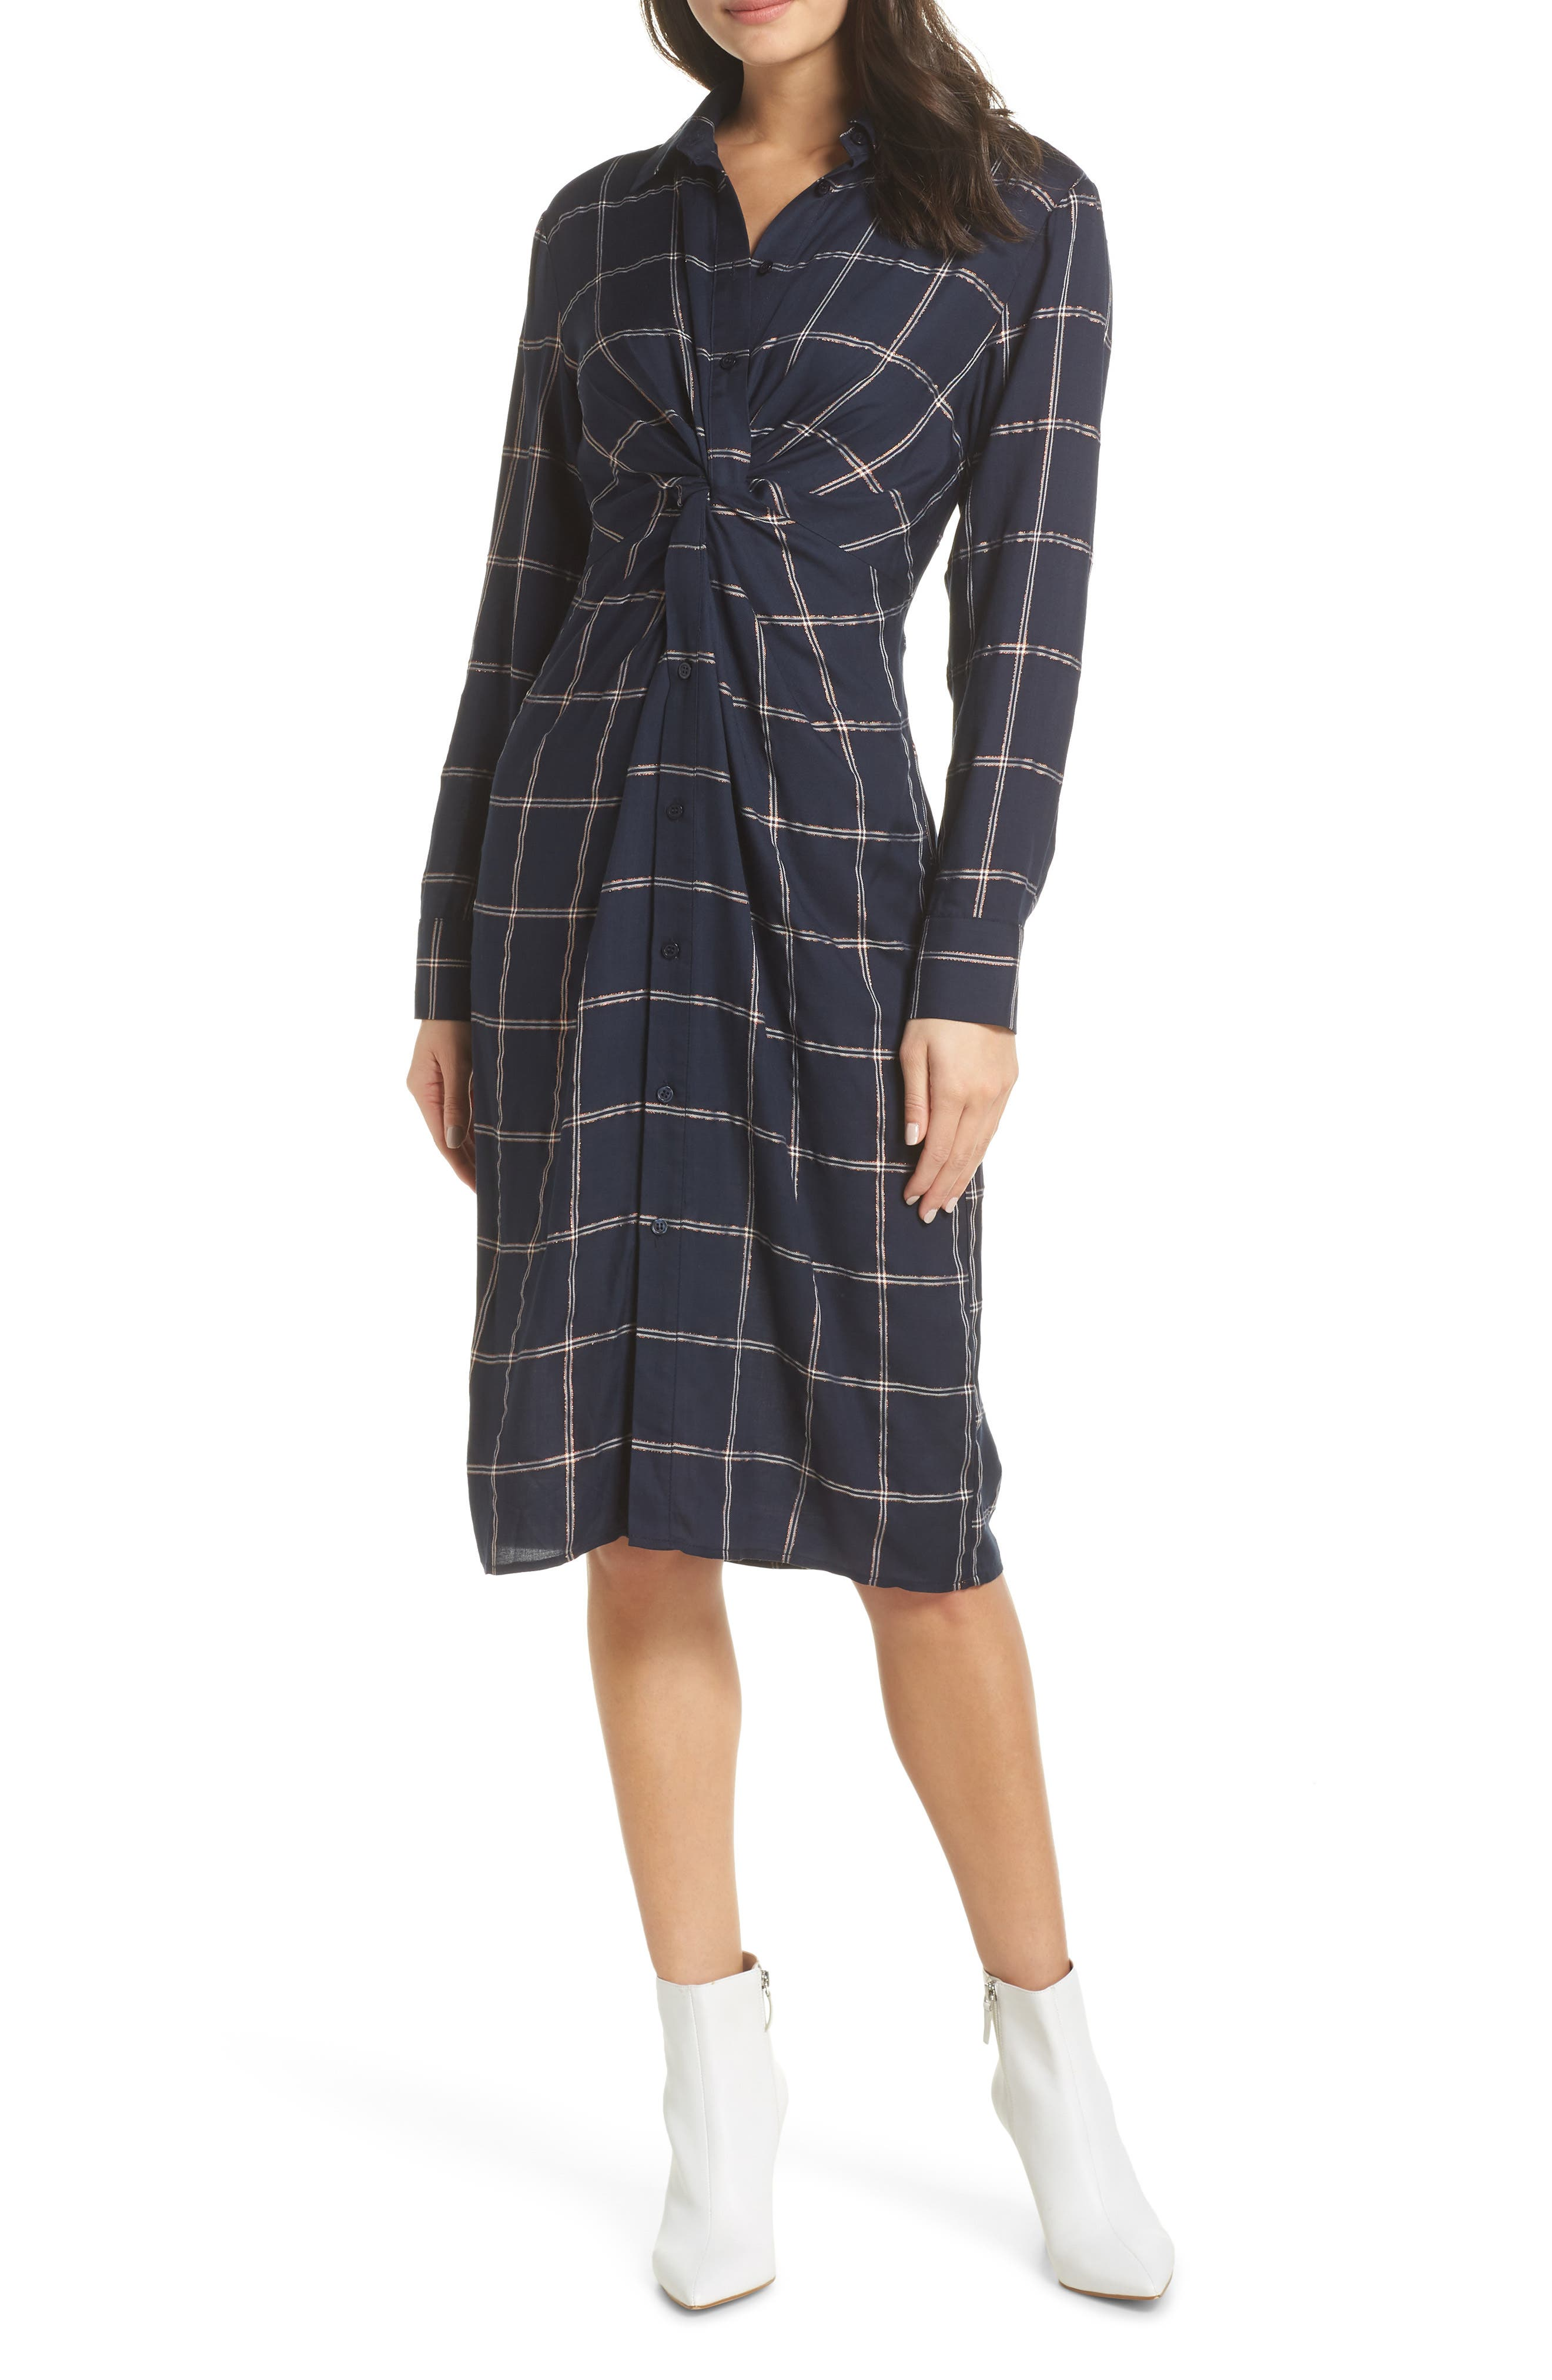 CHARLES HENRY Twist Knot Shirtdress in Navy Checker